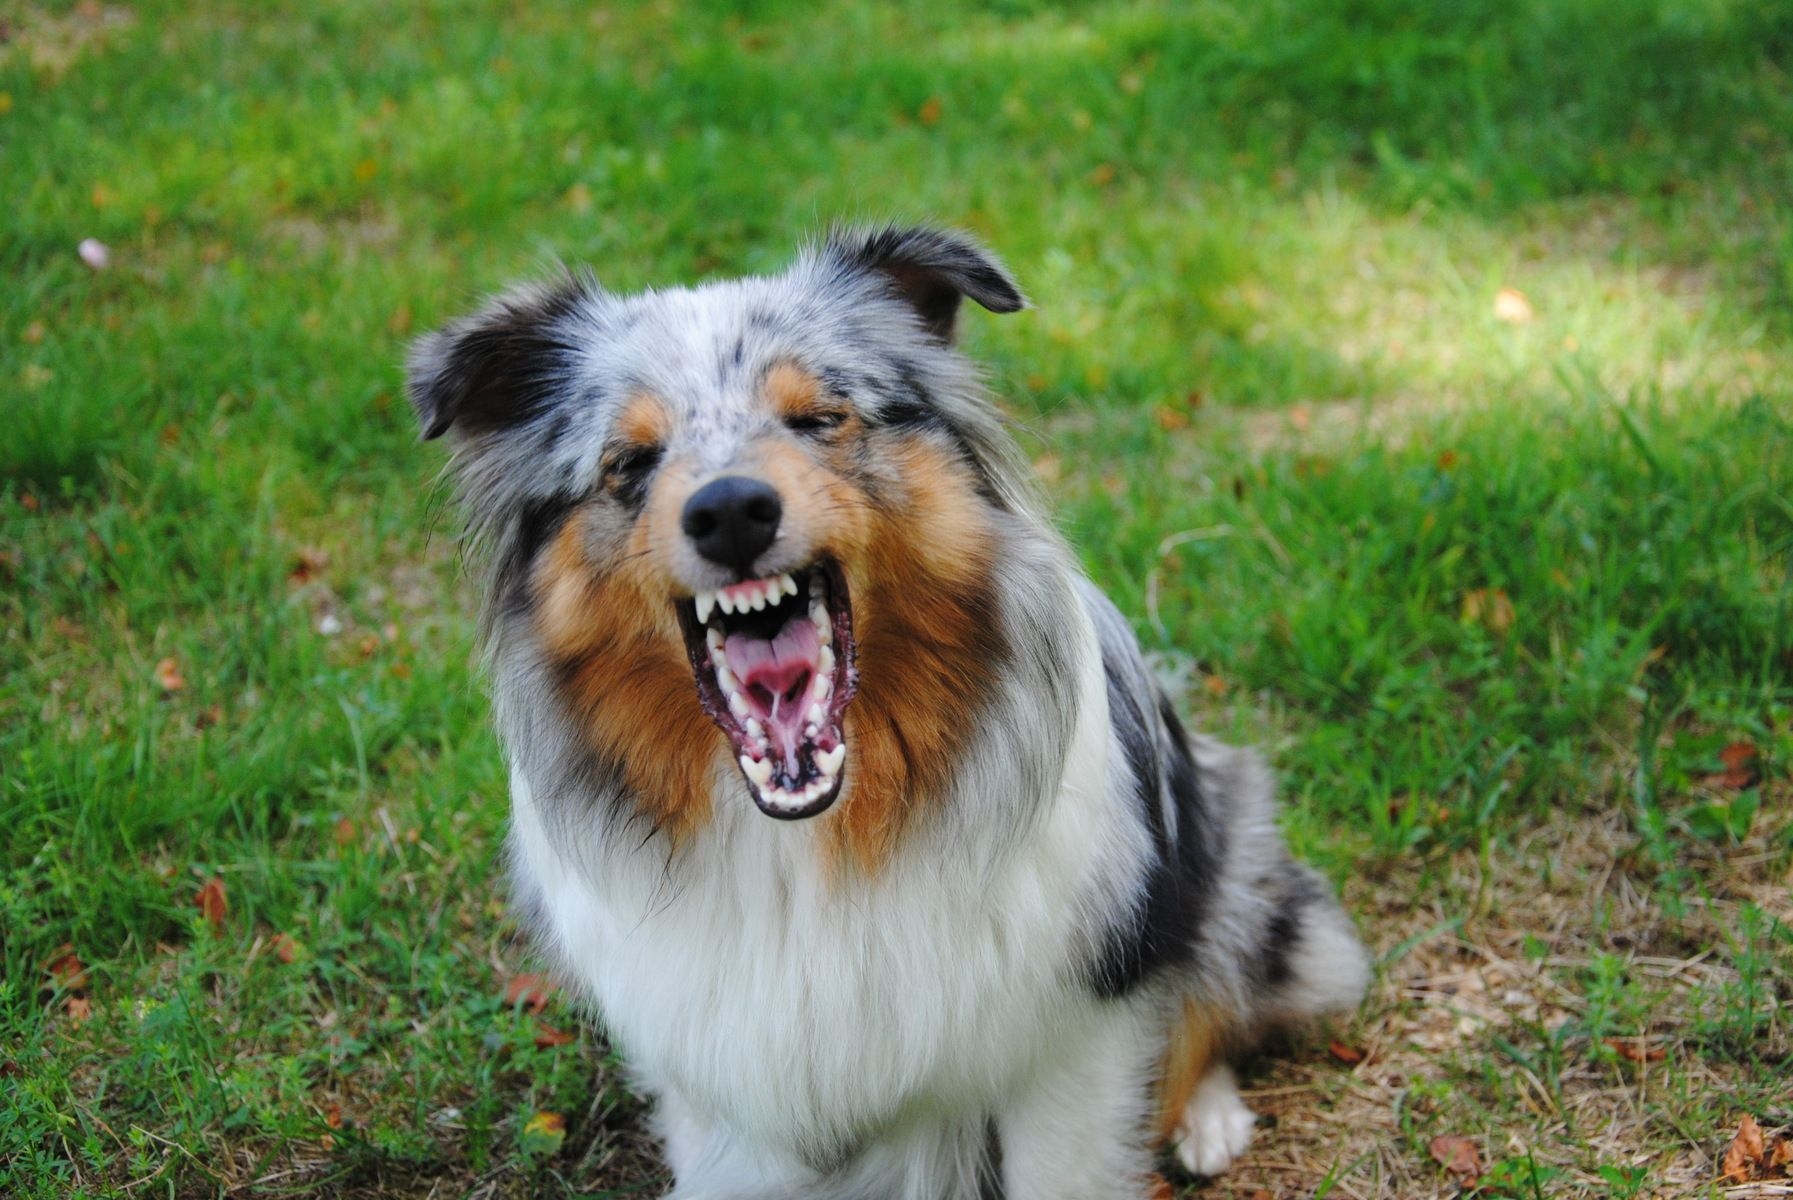 The angry dog breed sheltie | Angry dog, Dogs, Sheltie